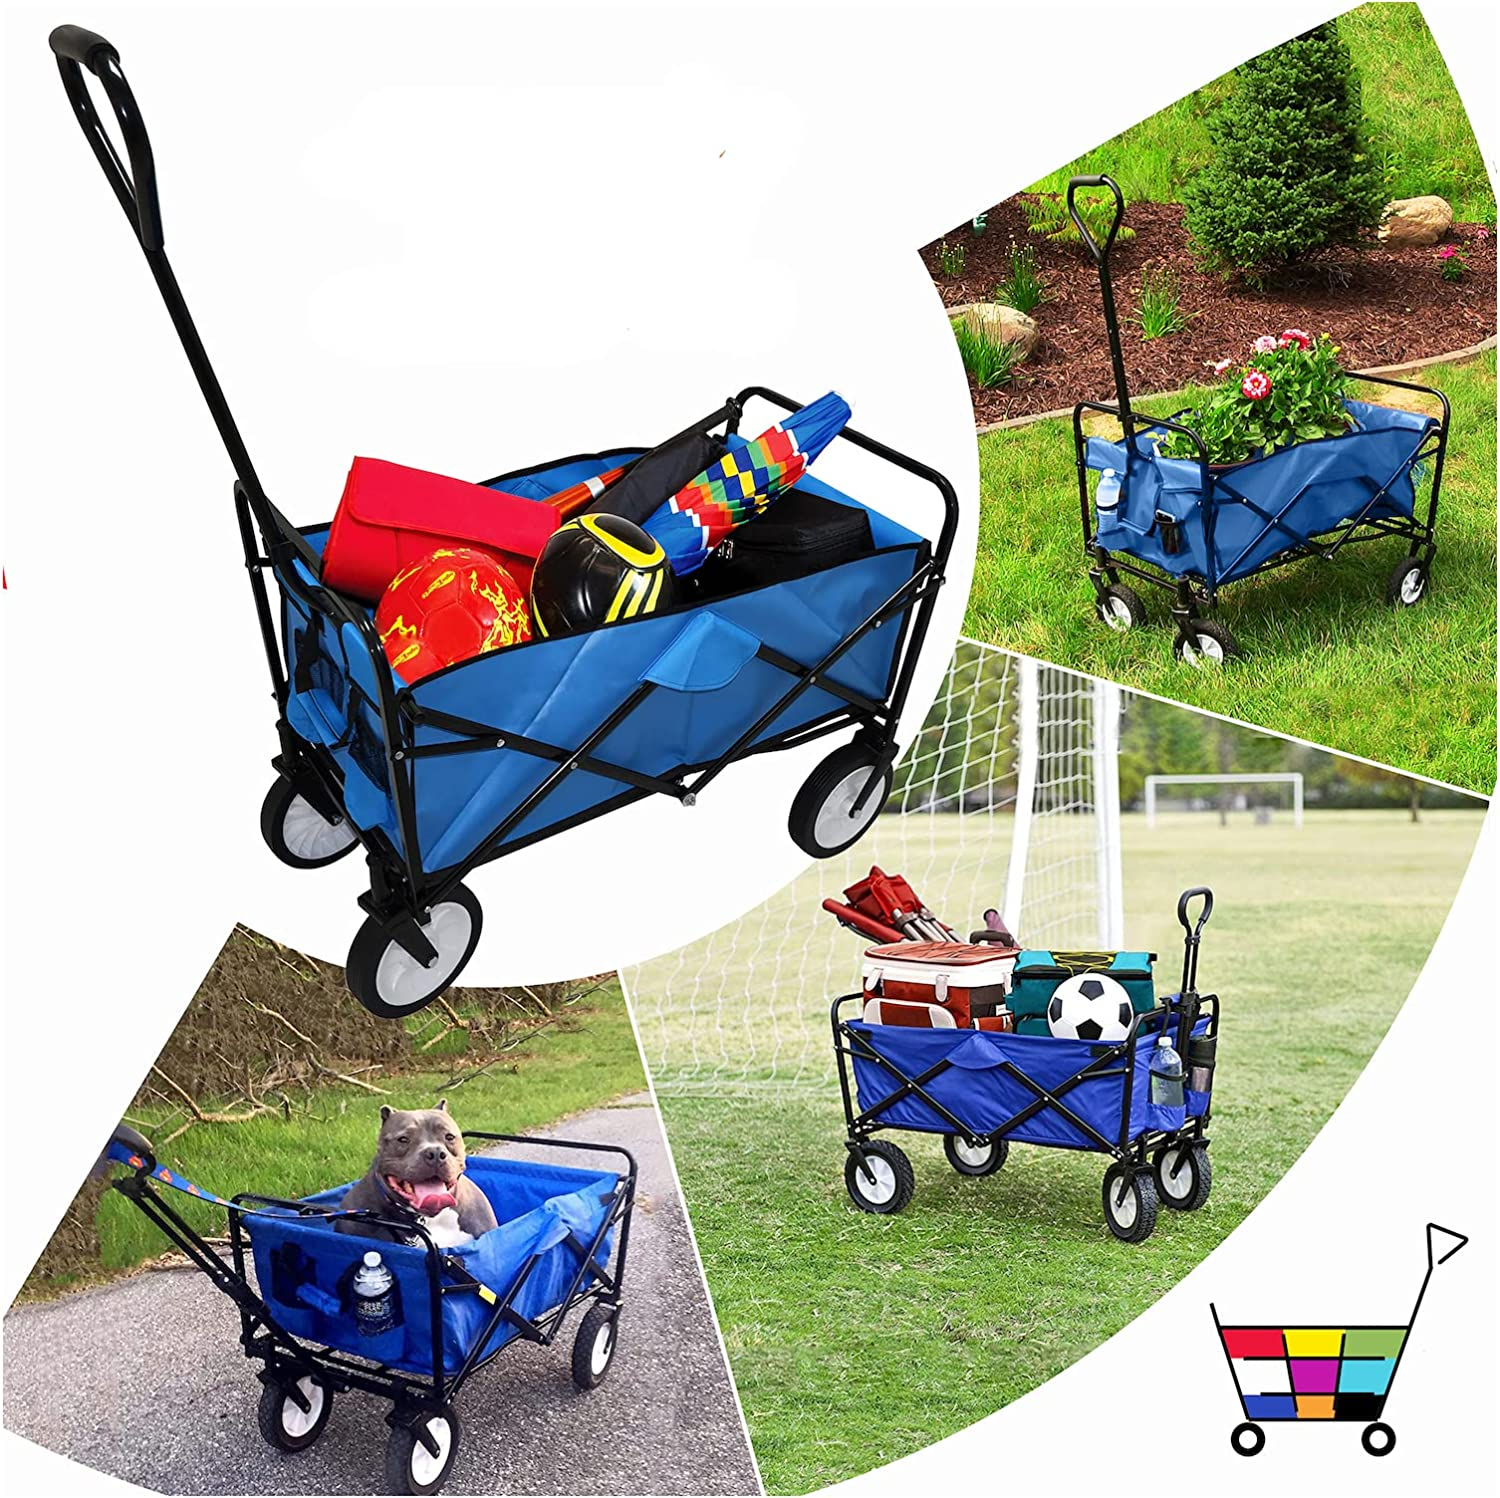 HTTMT- Blue Multifunction Mail order Folding Wagon Wh Price reduction Outdoor Portable Cart